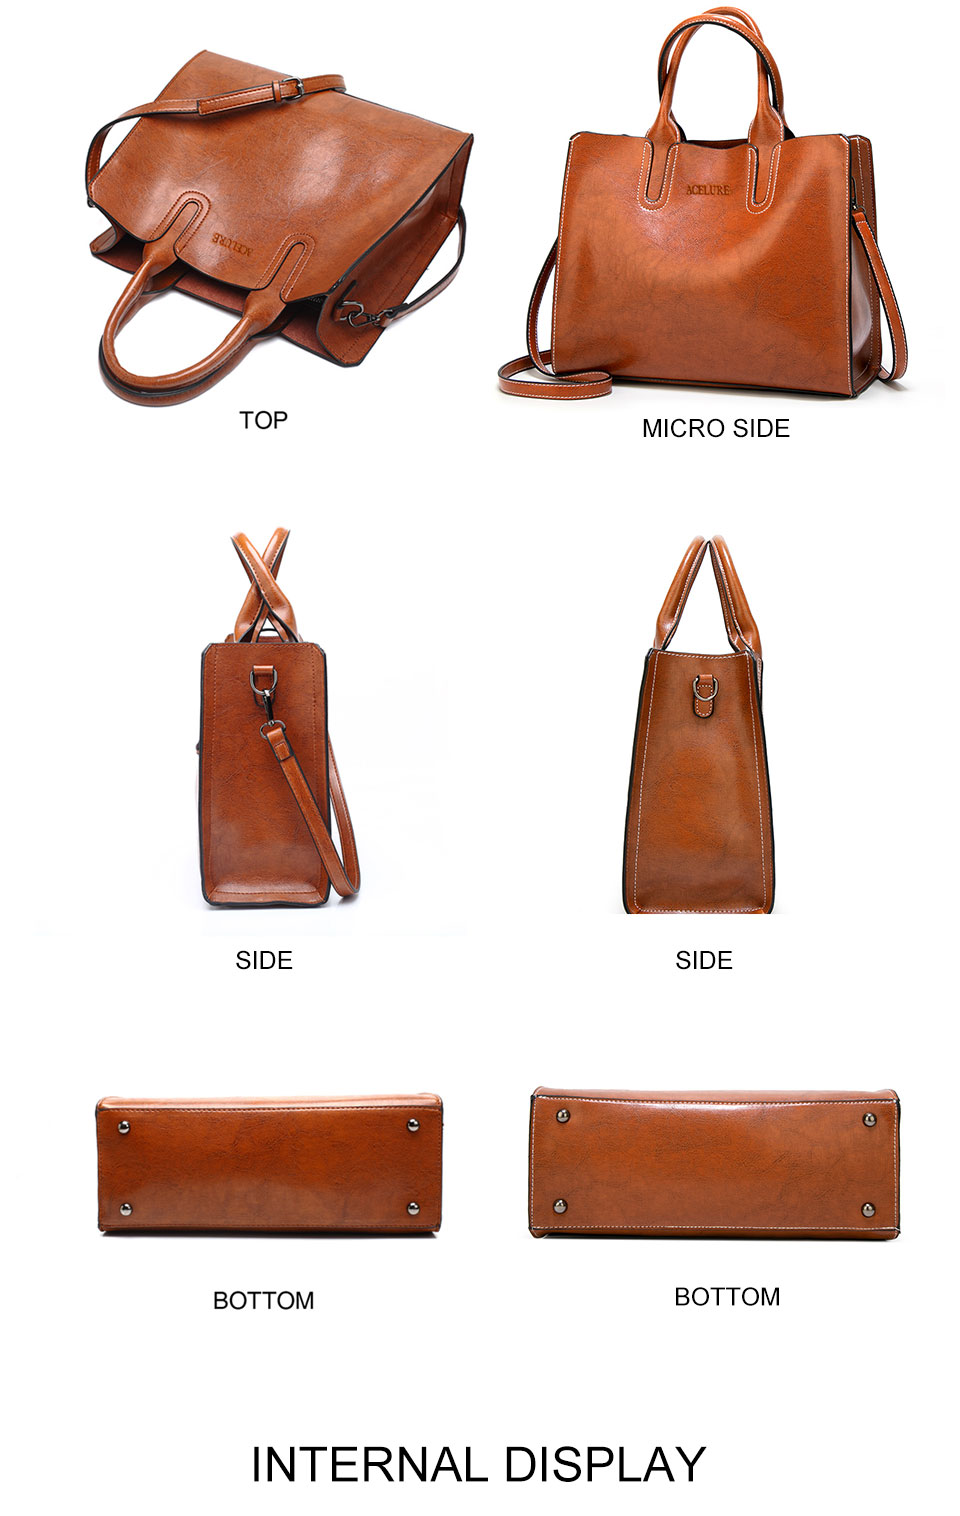 ACELURE Leather Handbags Big Women Bag High Quality Casual Female Bags Trunk Tote Spanish Brand Shoulder Bag Ladies Large Bolsos 13